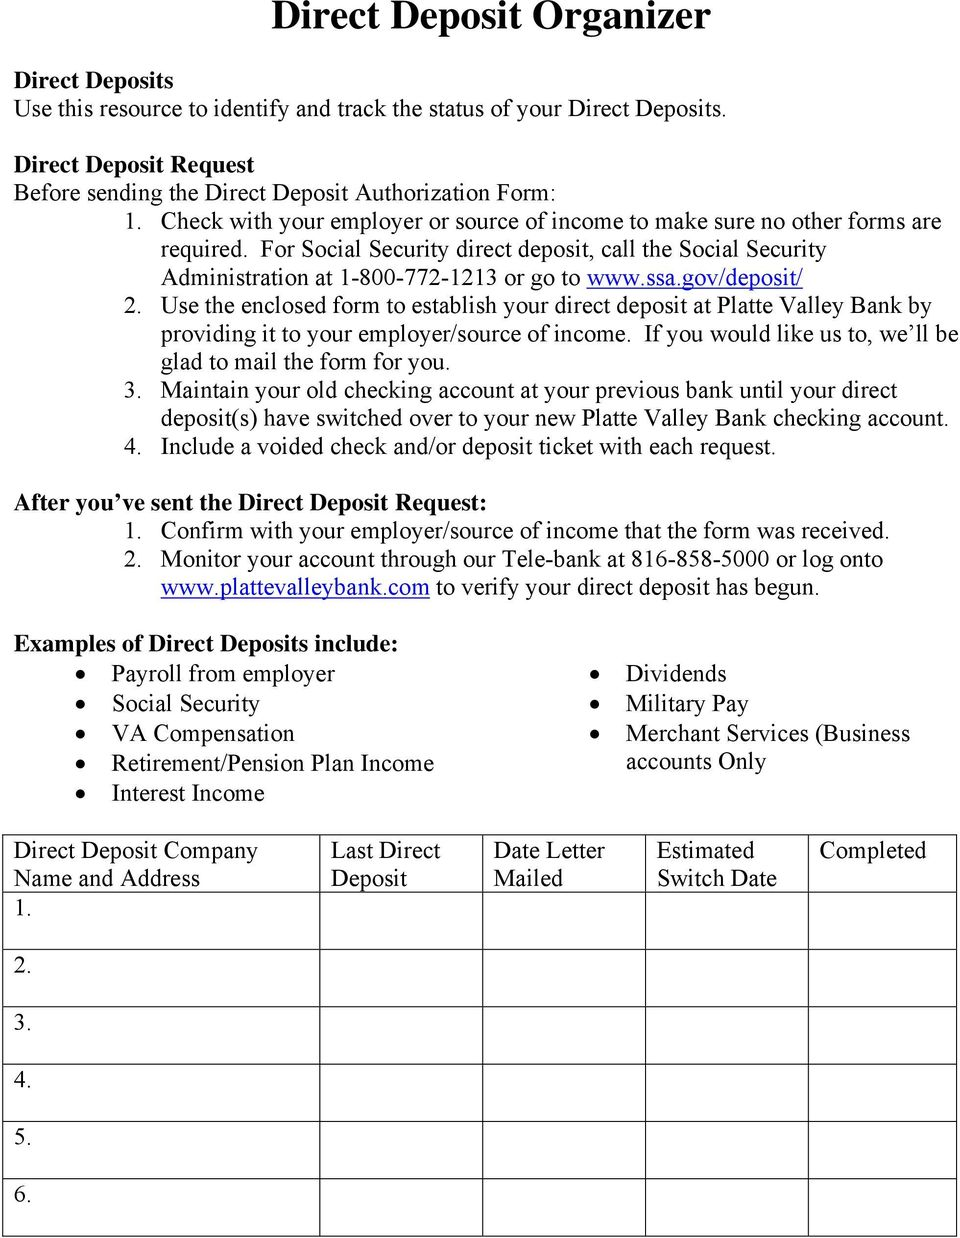 gov/deposit/ 2. Use the enclosed form to establish your direct deposit at Platte Valley Bank by providing it to your employer/source of income.